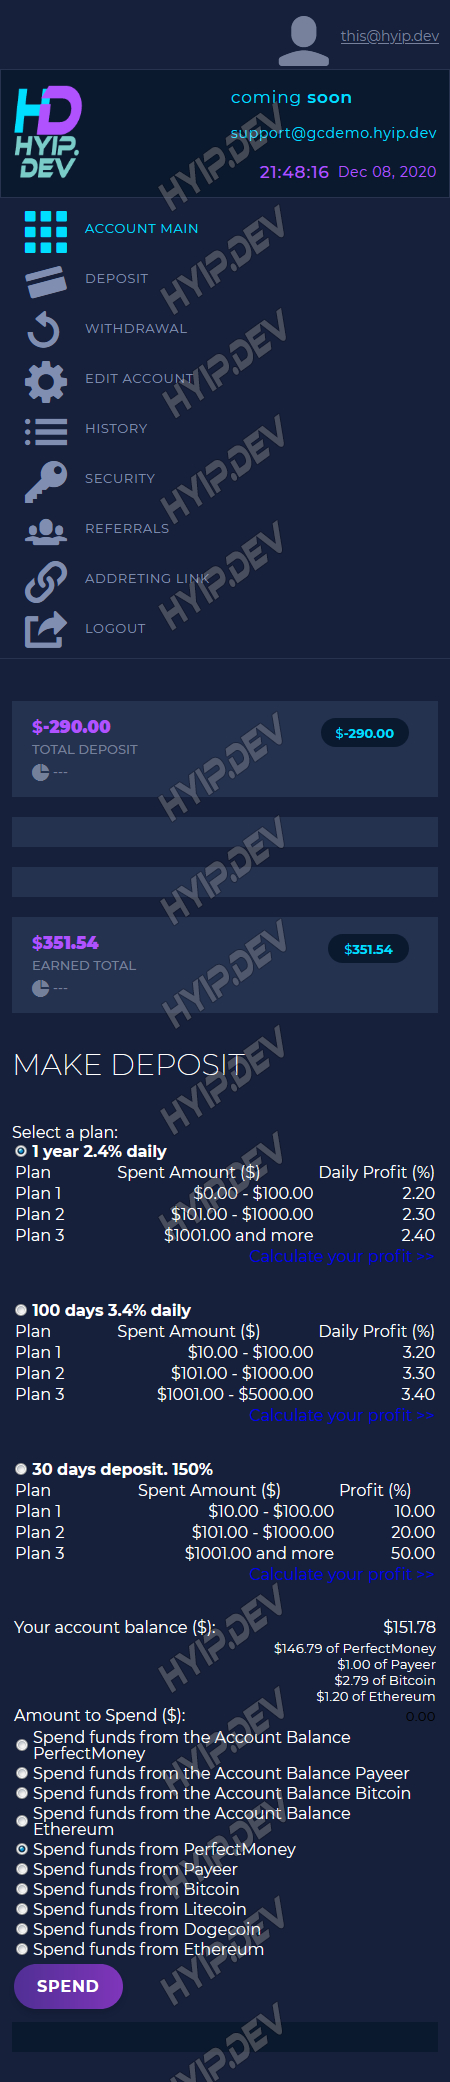 goldcoders hyip template no. 185, mobile page screenshot